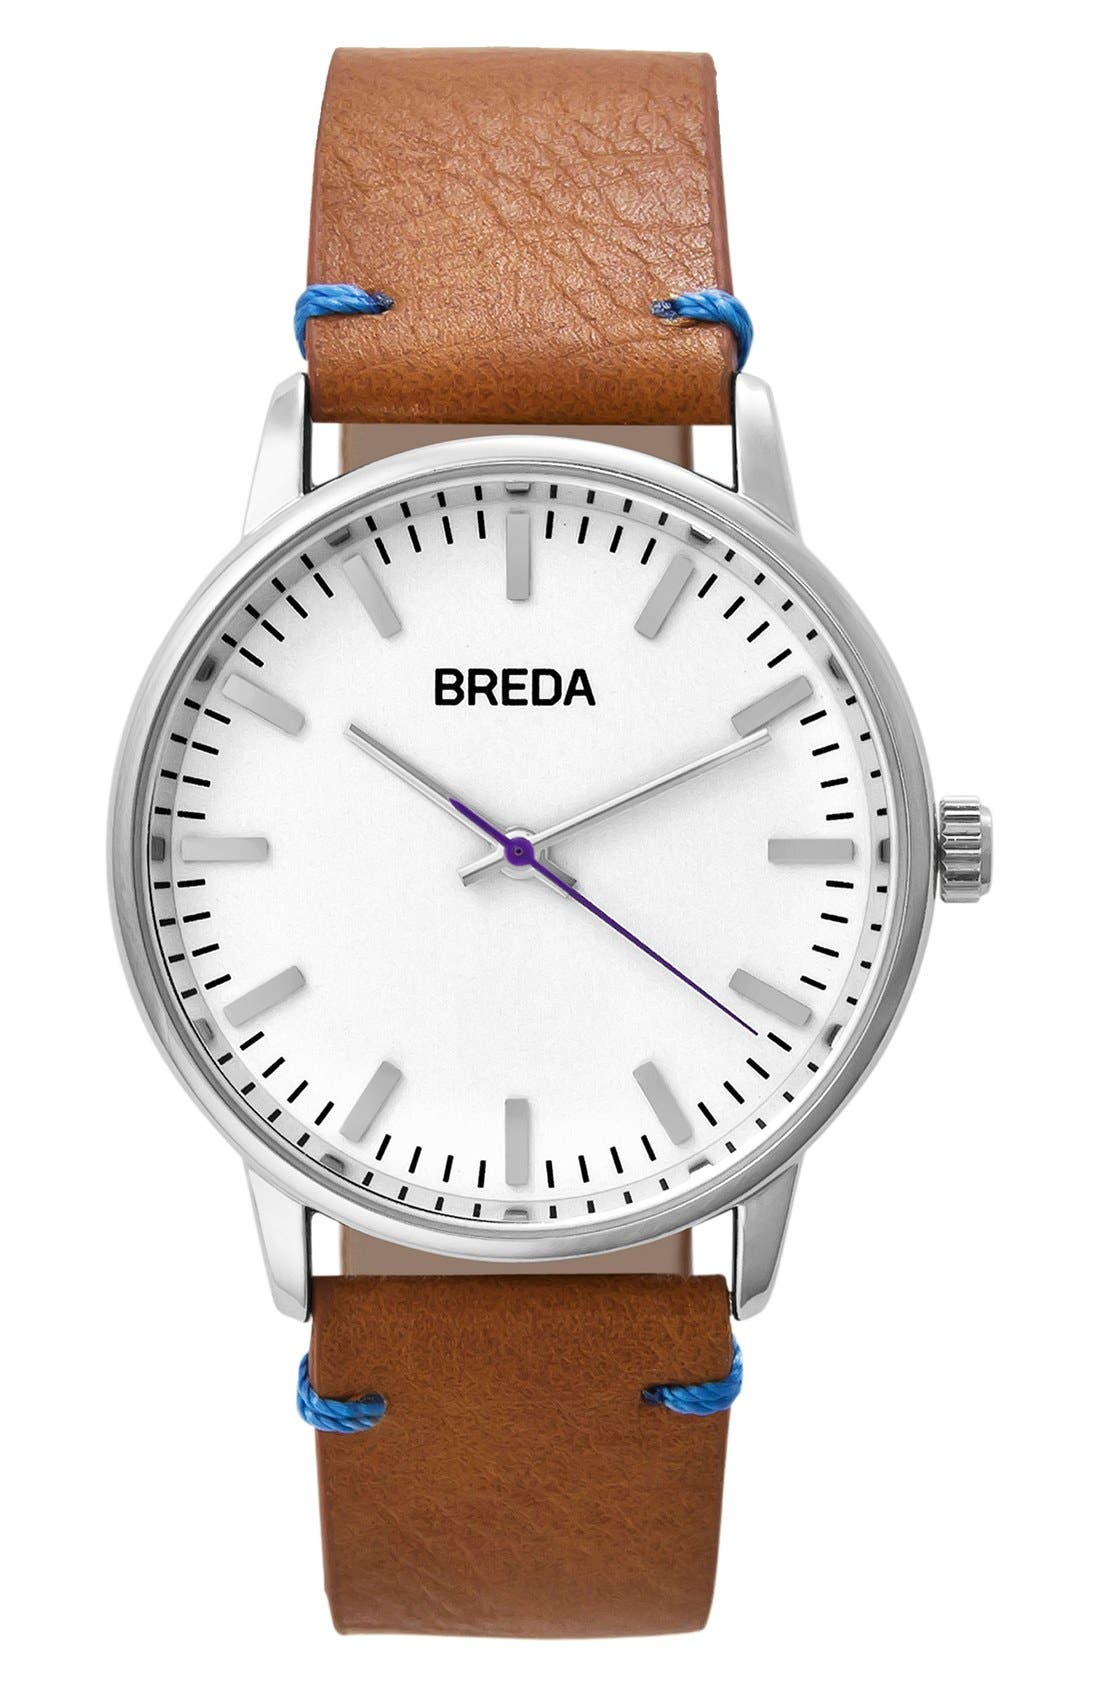 Main Image - BREDA Zapf Leather Strap Watch, 39mm